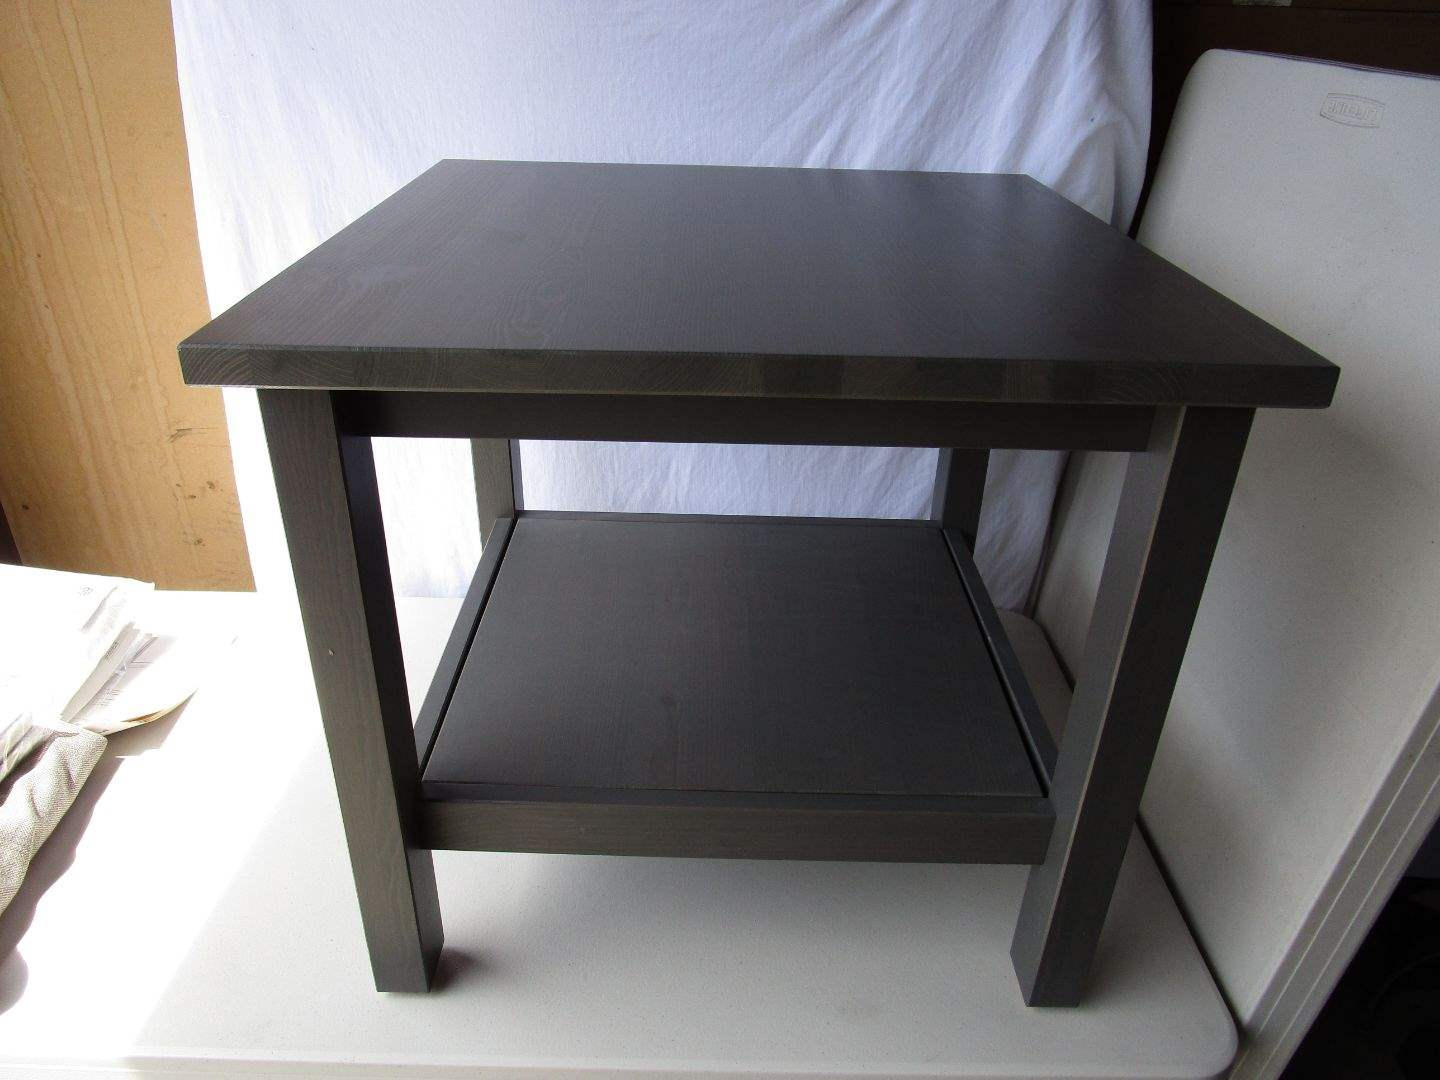 Lot # 67 - NEW End Table From IKEA (main image)